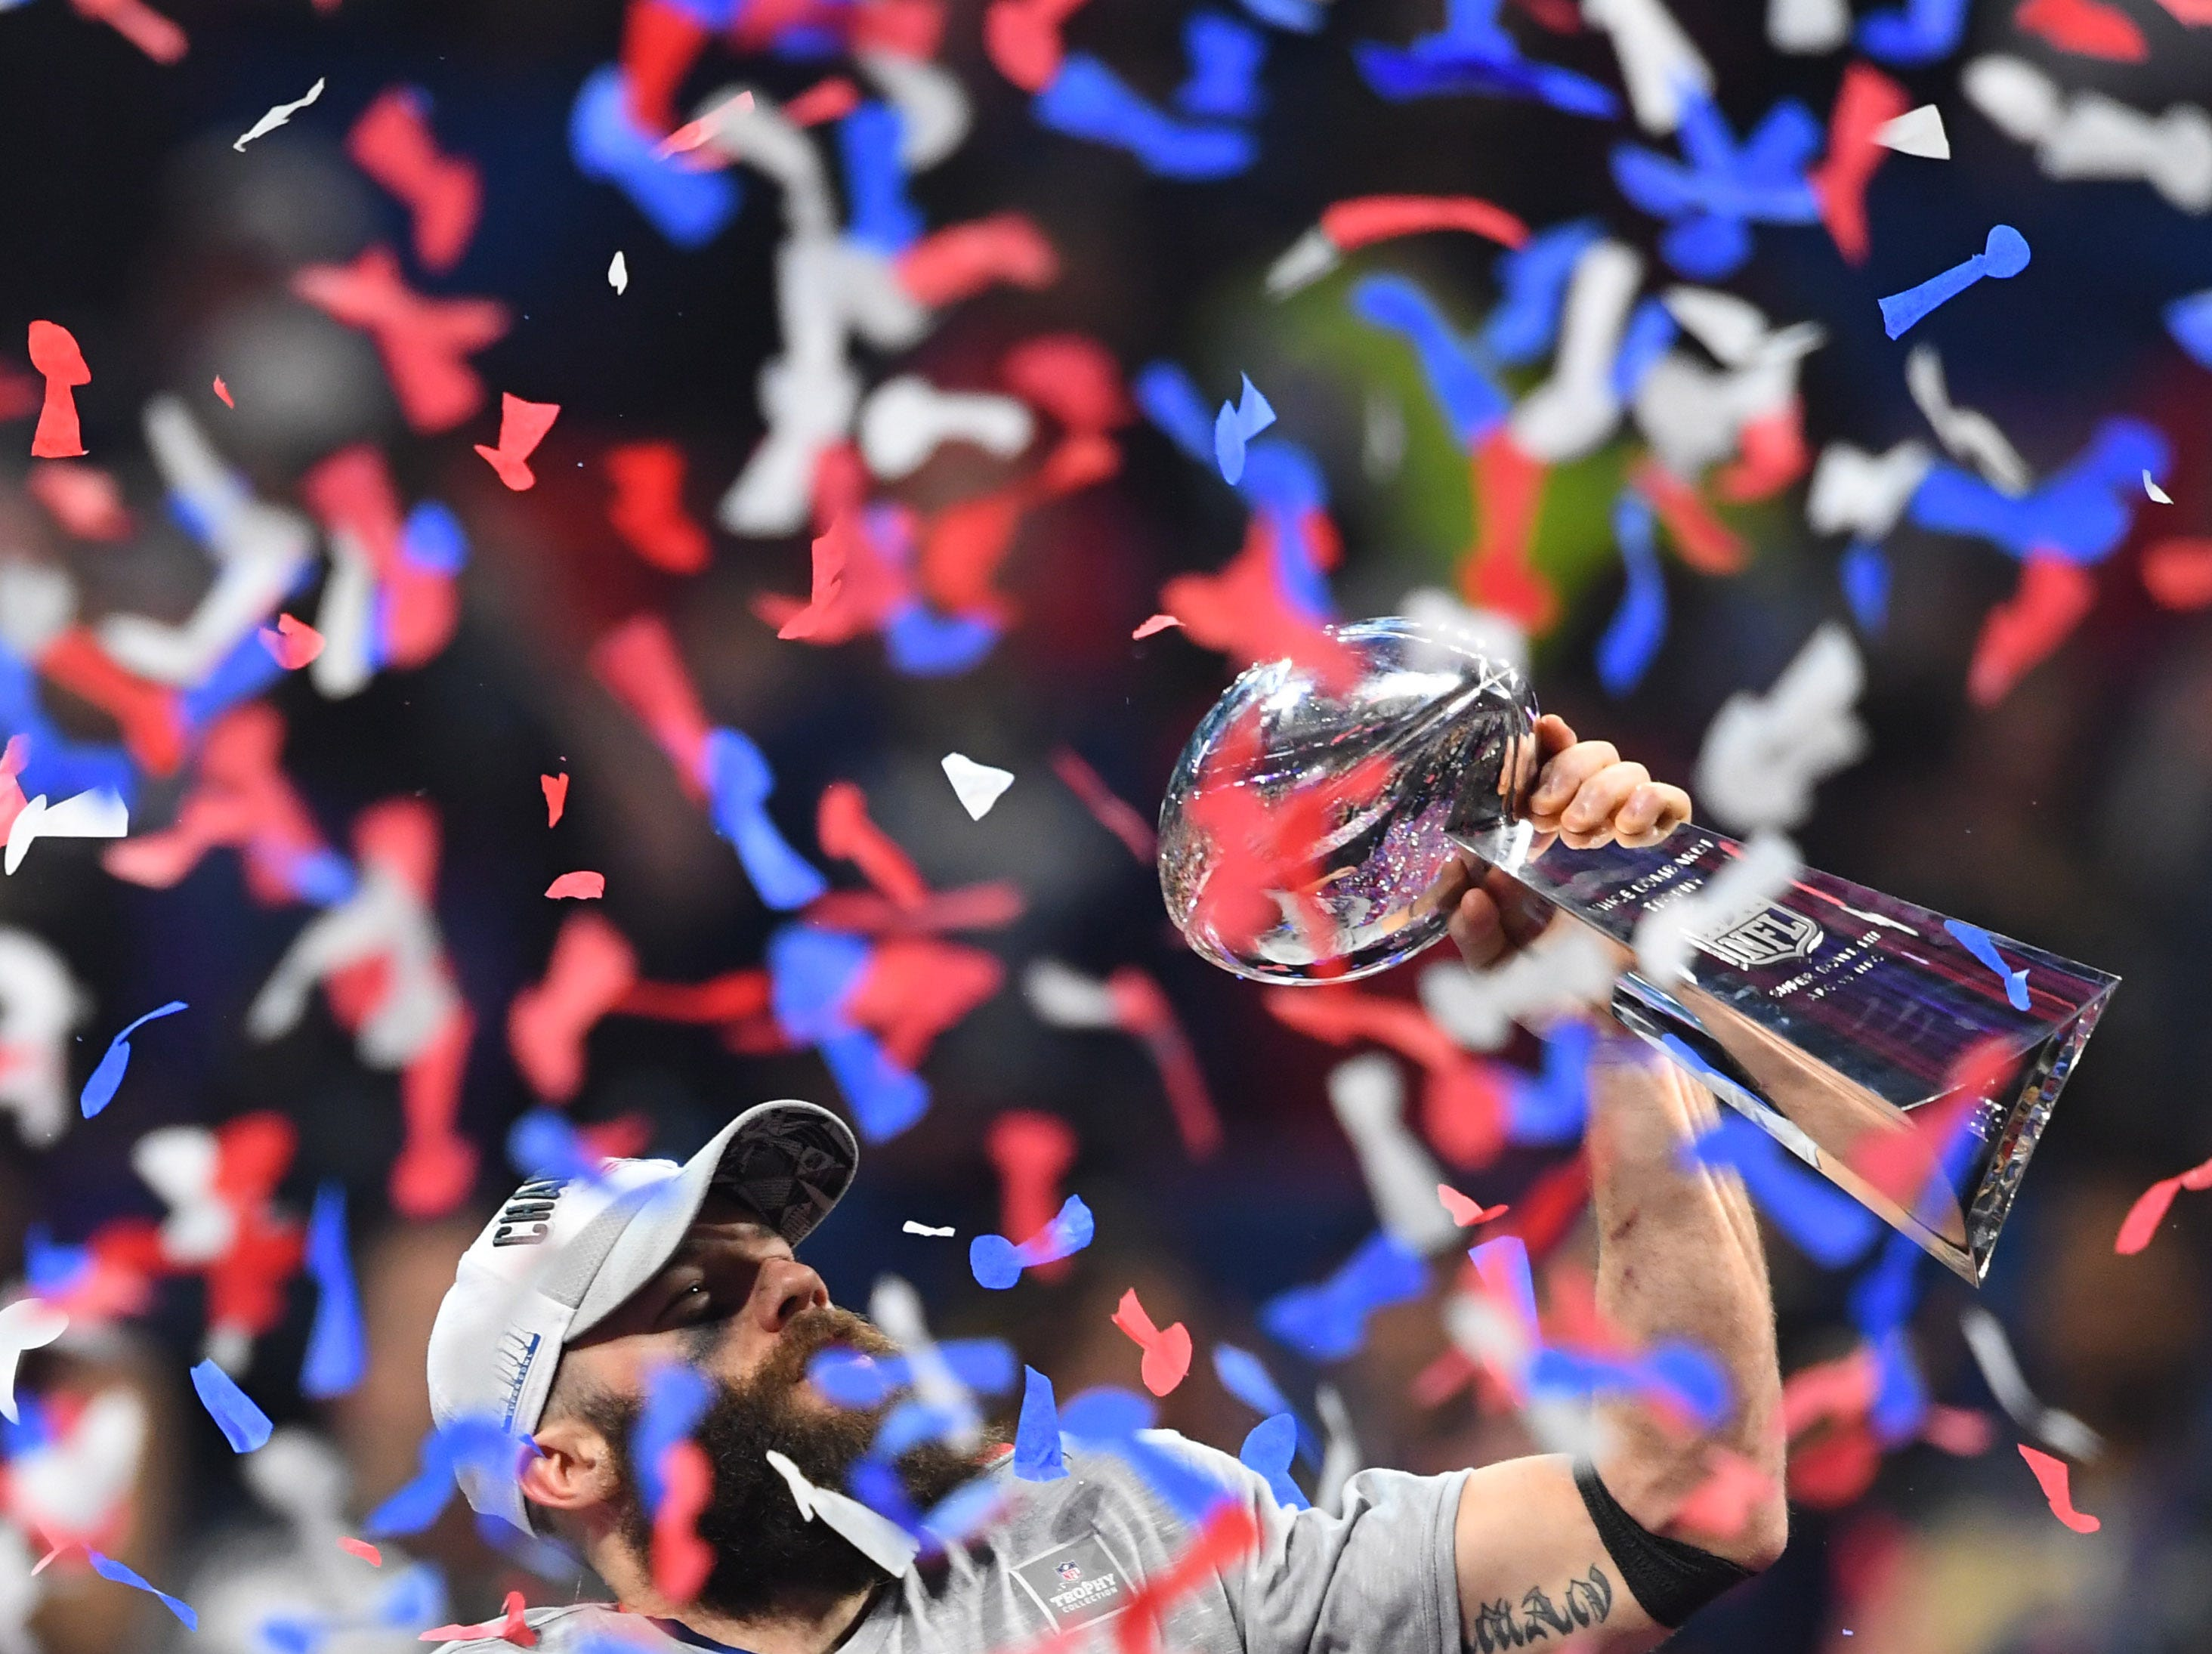 Wide receiver Julian Edelman, lifting the Vince Lombardi trophy, was named Most Valuable Player of Super Bowl LIII.